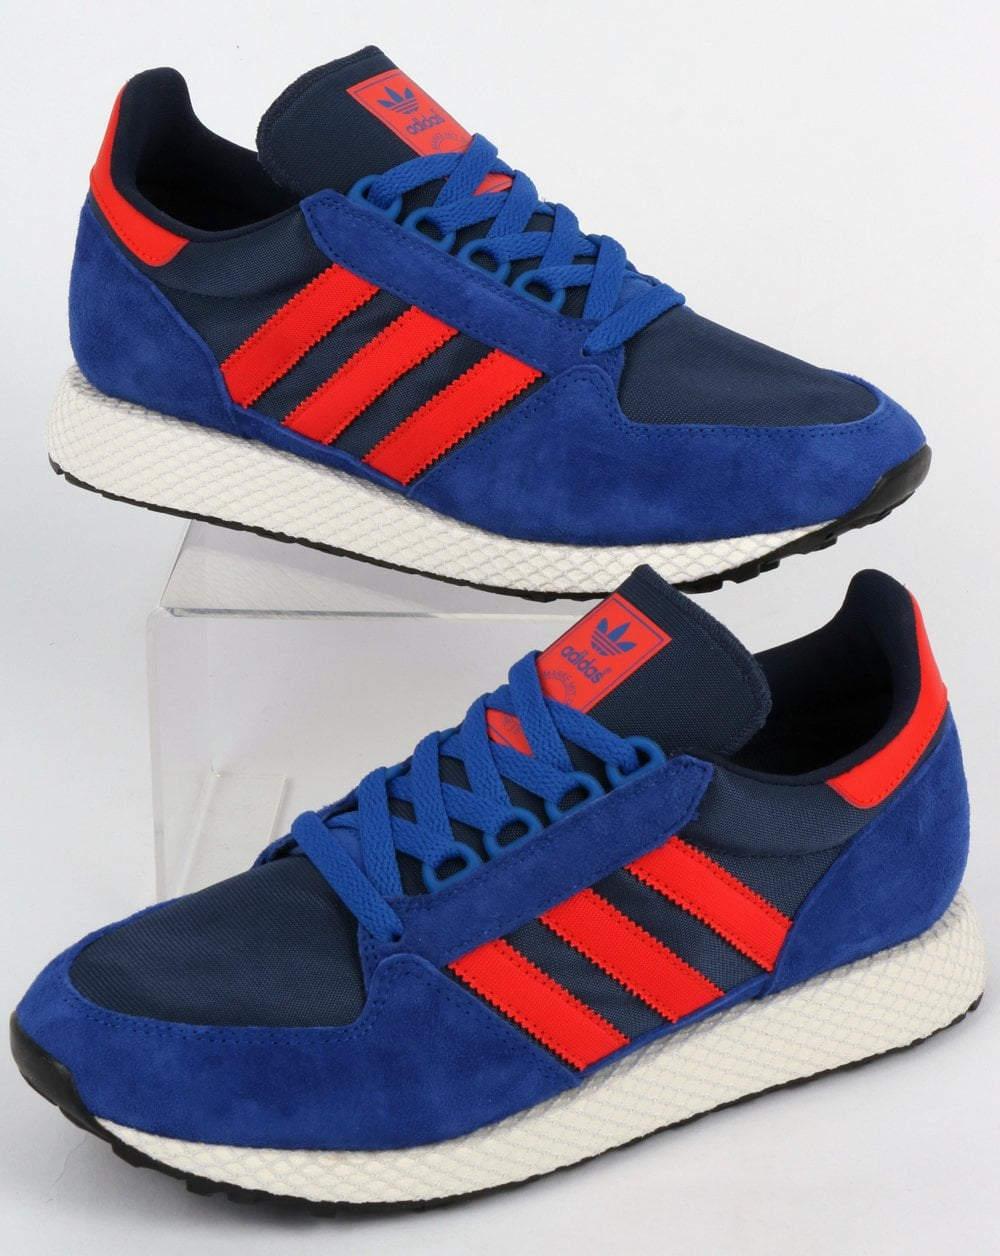 Adidas Forest Grove Oregon Trainers